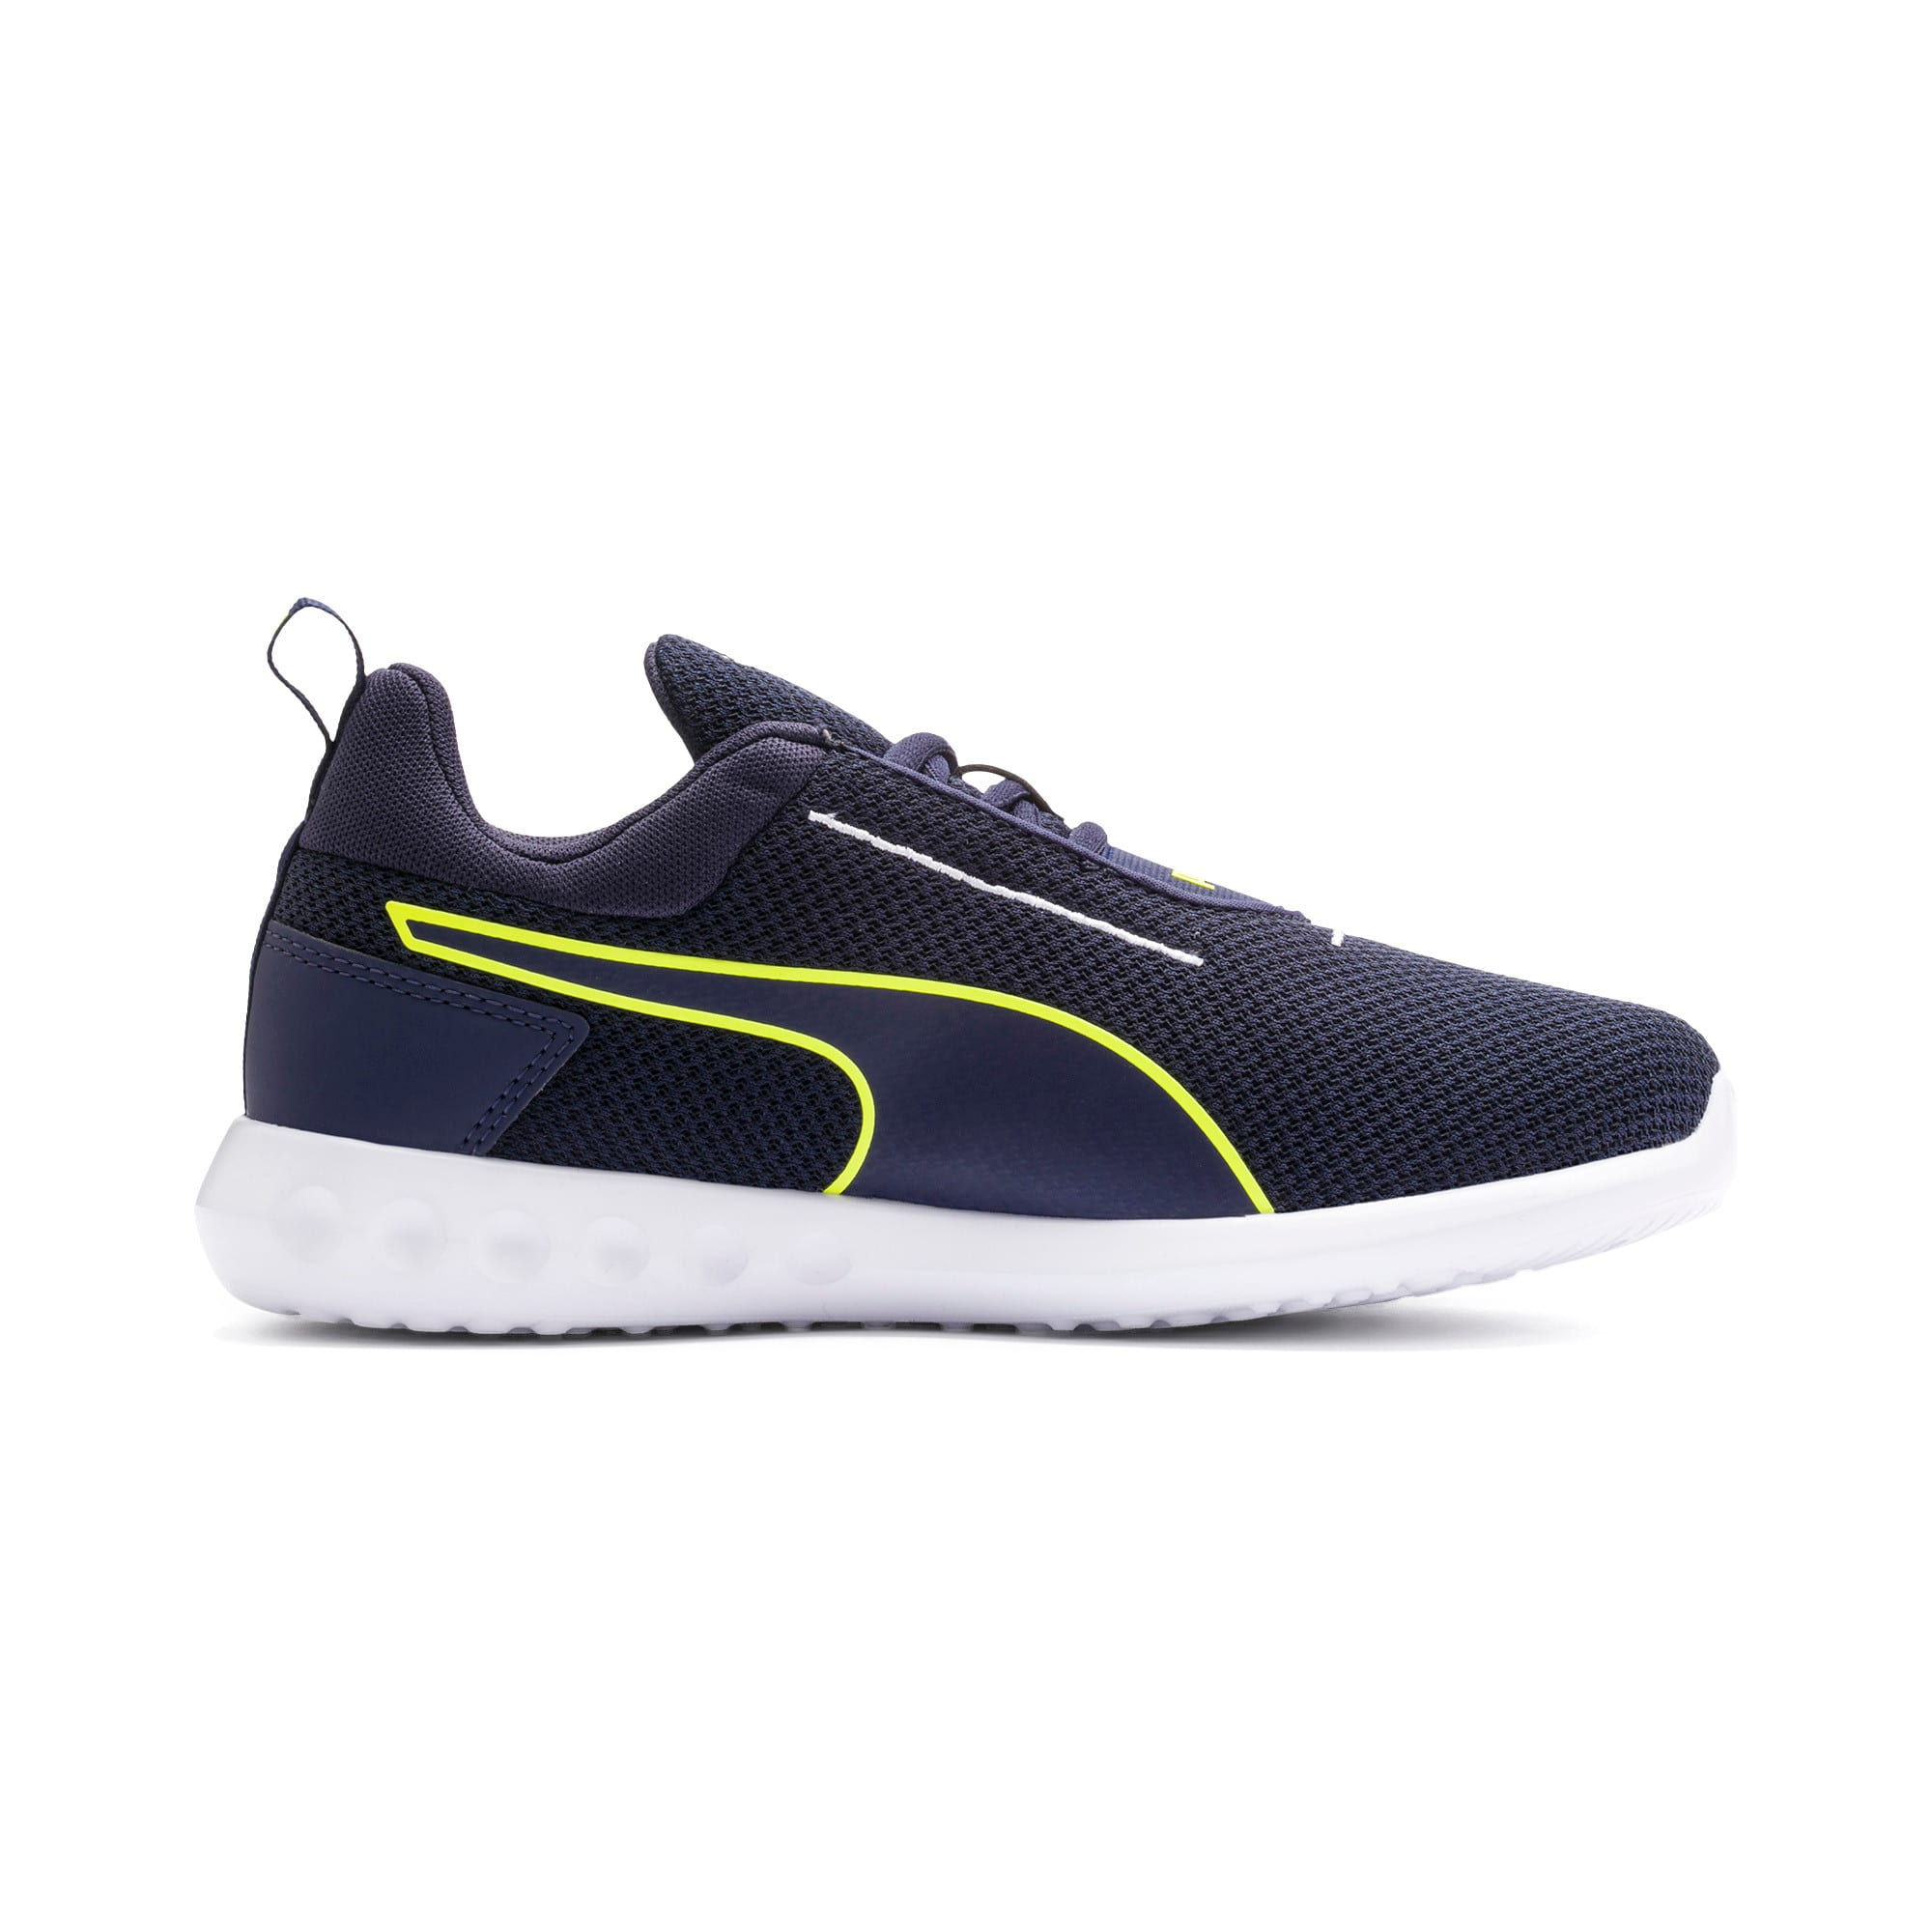 Thumbnail 5 of Carson 2 Concave Youth Trainers, Puma Black-Peacoat, medium